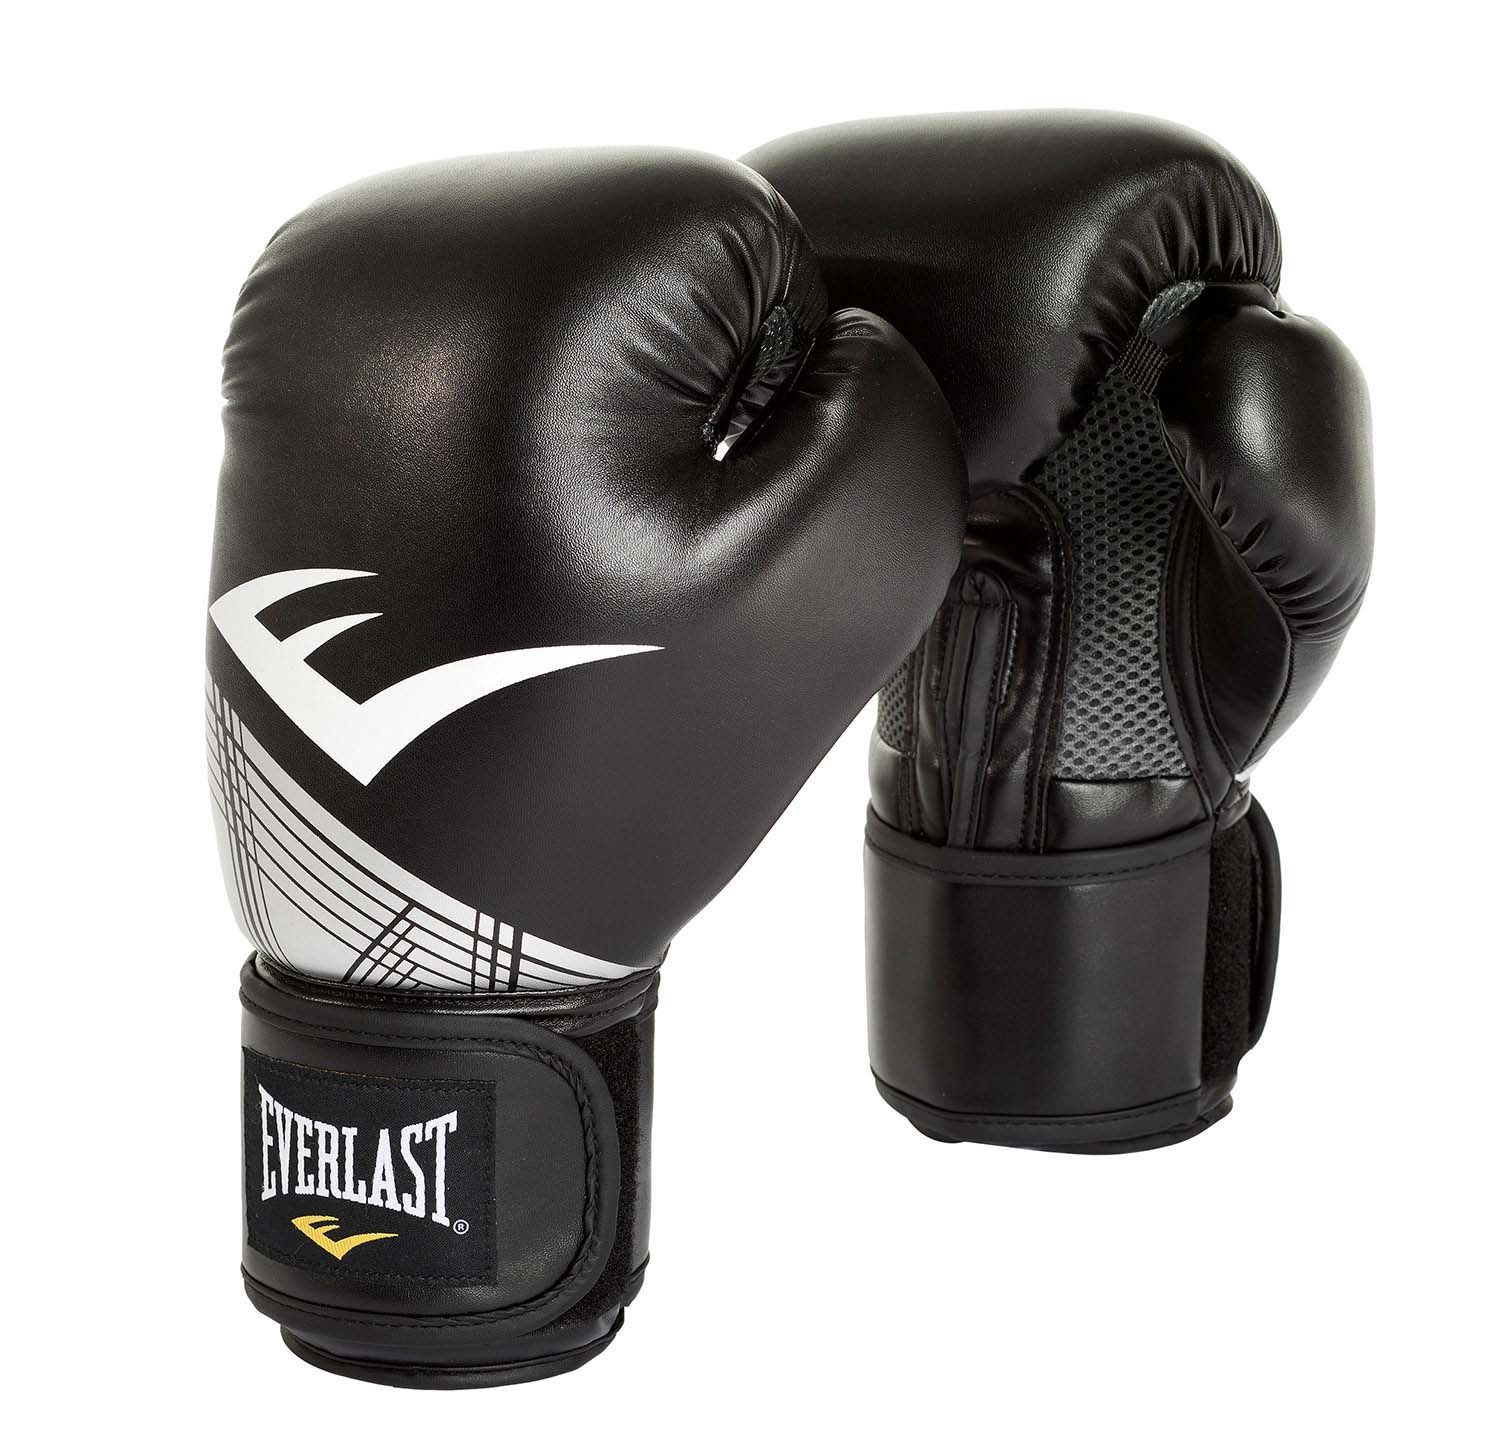 PRO STYLE ADVANCE TRAINING GLOVE  12oz